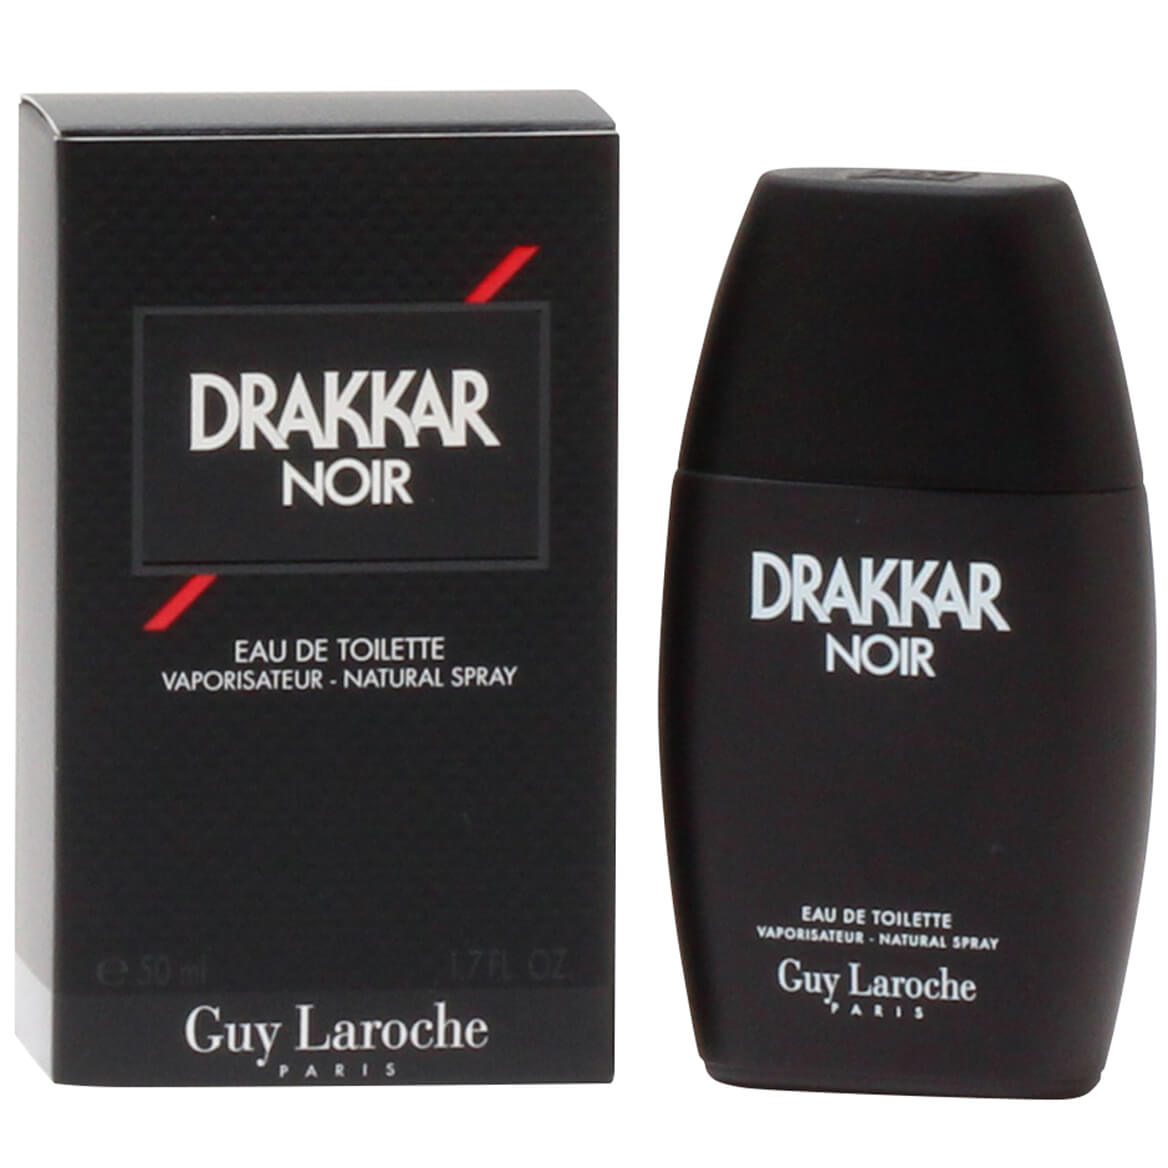 Guy Laroche Drakkar Noir Men, EDT Spray 1.7oz-360293